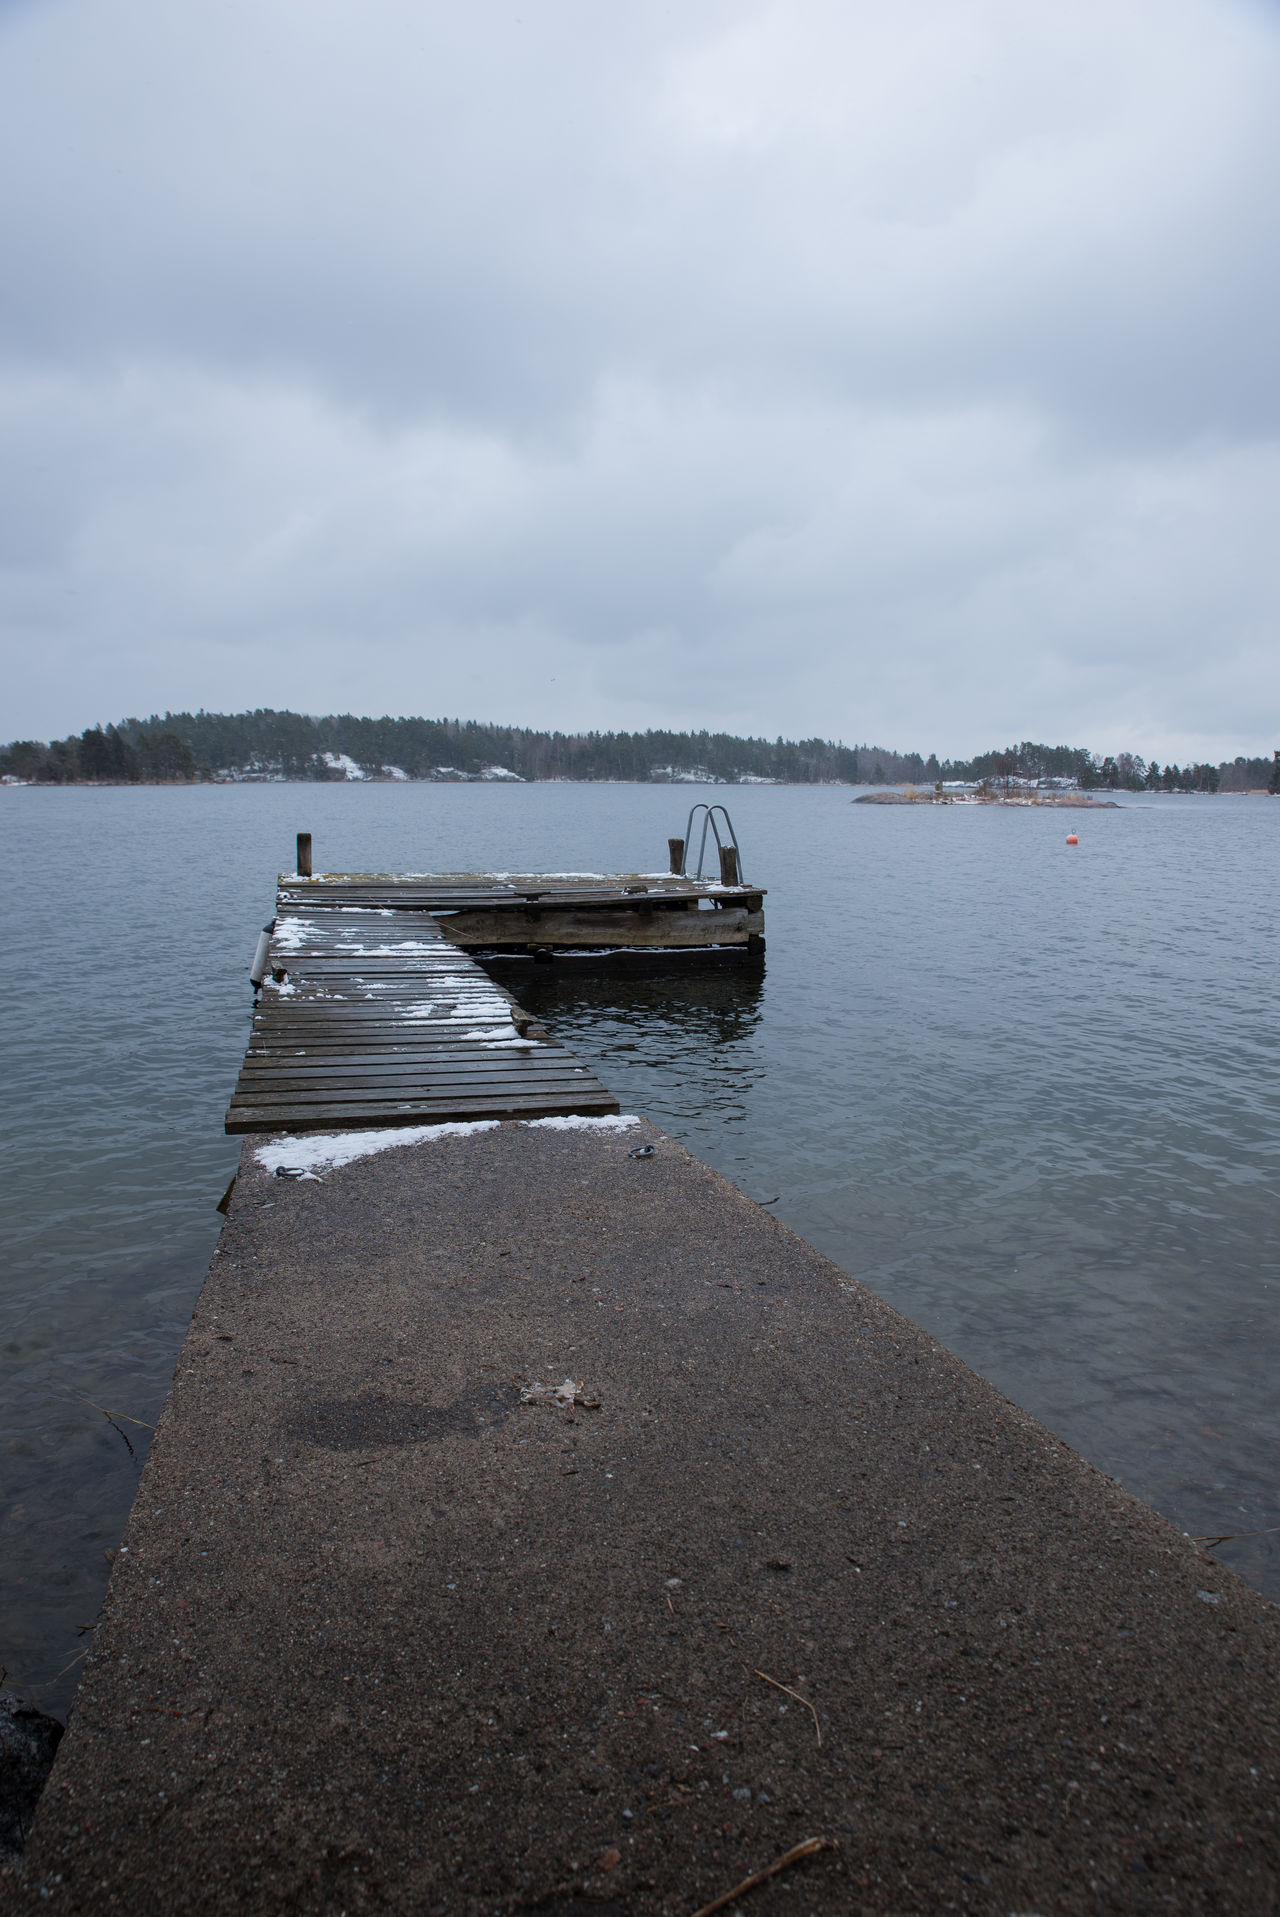 A cloudy day in the Stockholm archipelage. Snow is covering the dock but the water is open. Beauty In Nature Cloud - Sky Day Lake Mode Of Transport Nature Nautical Vessel No People Outdoors Scenics Sky Tranquil Scene Tranquility Transportation Tree Water